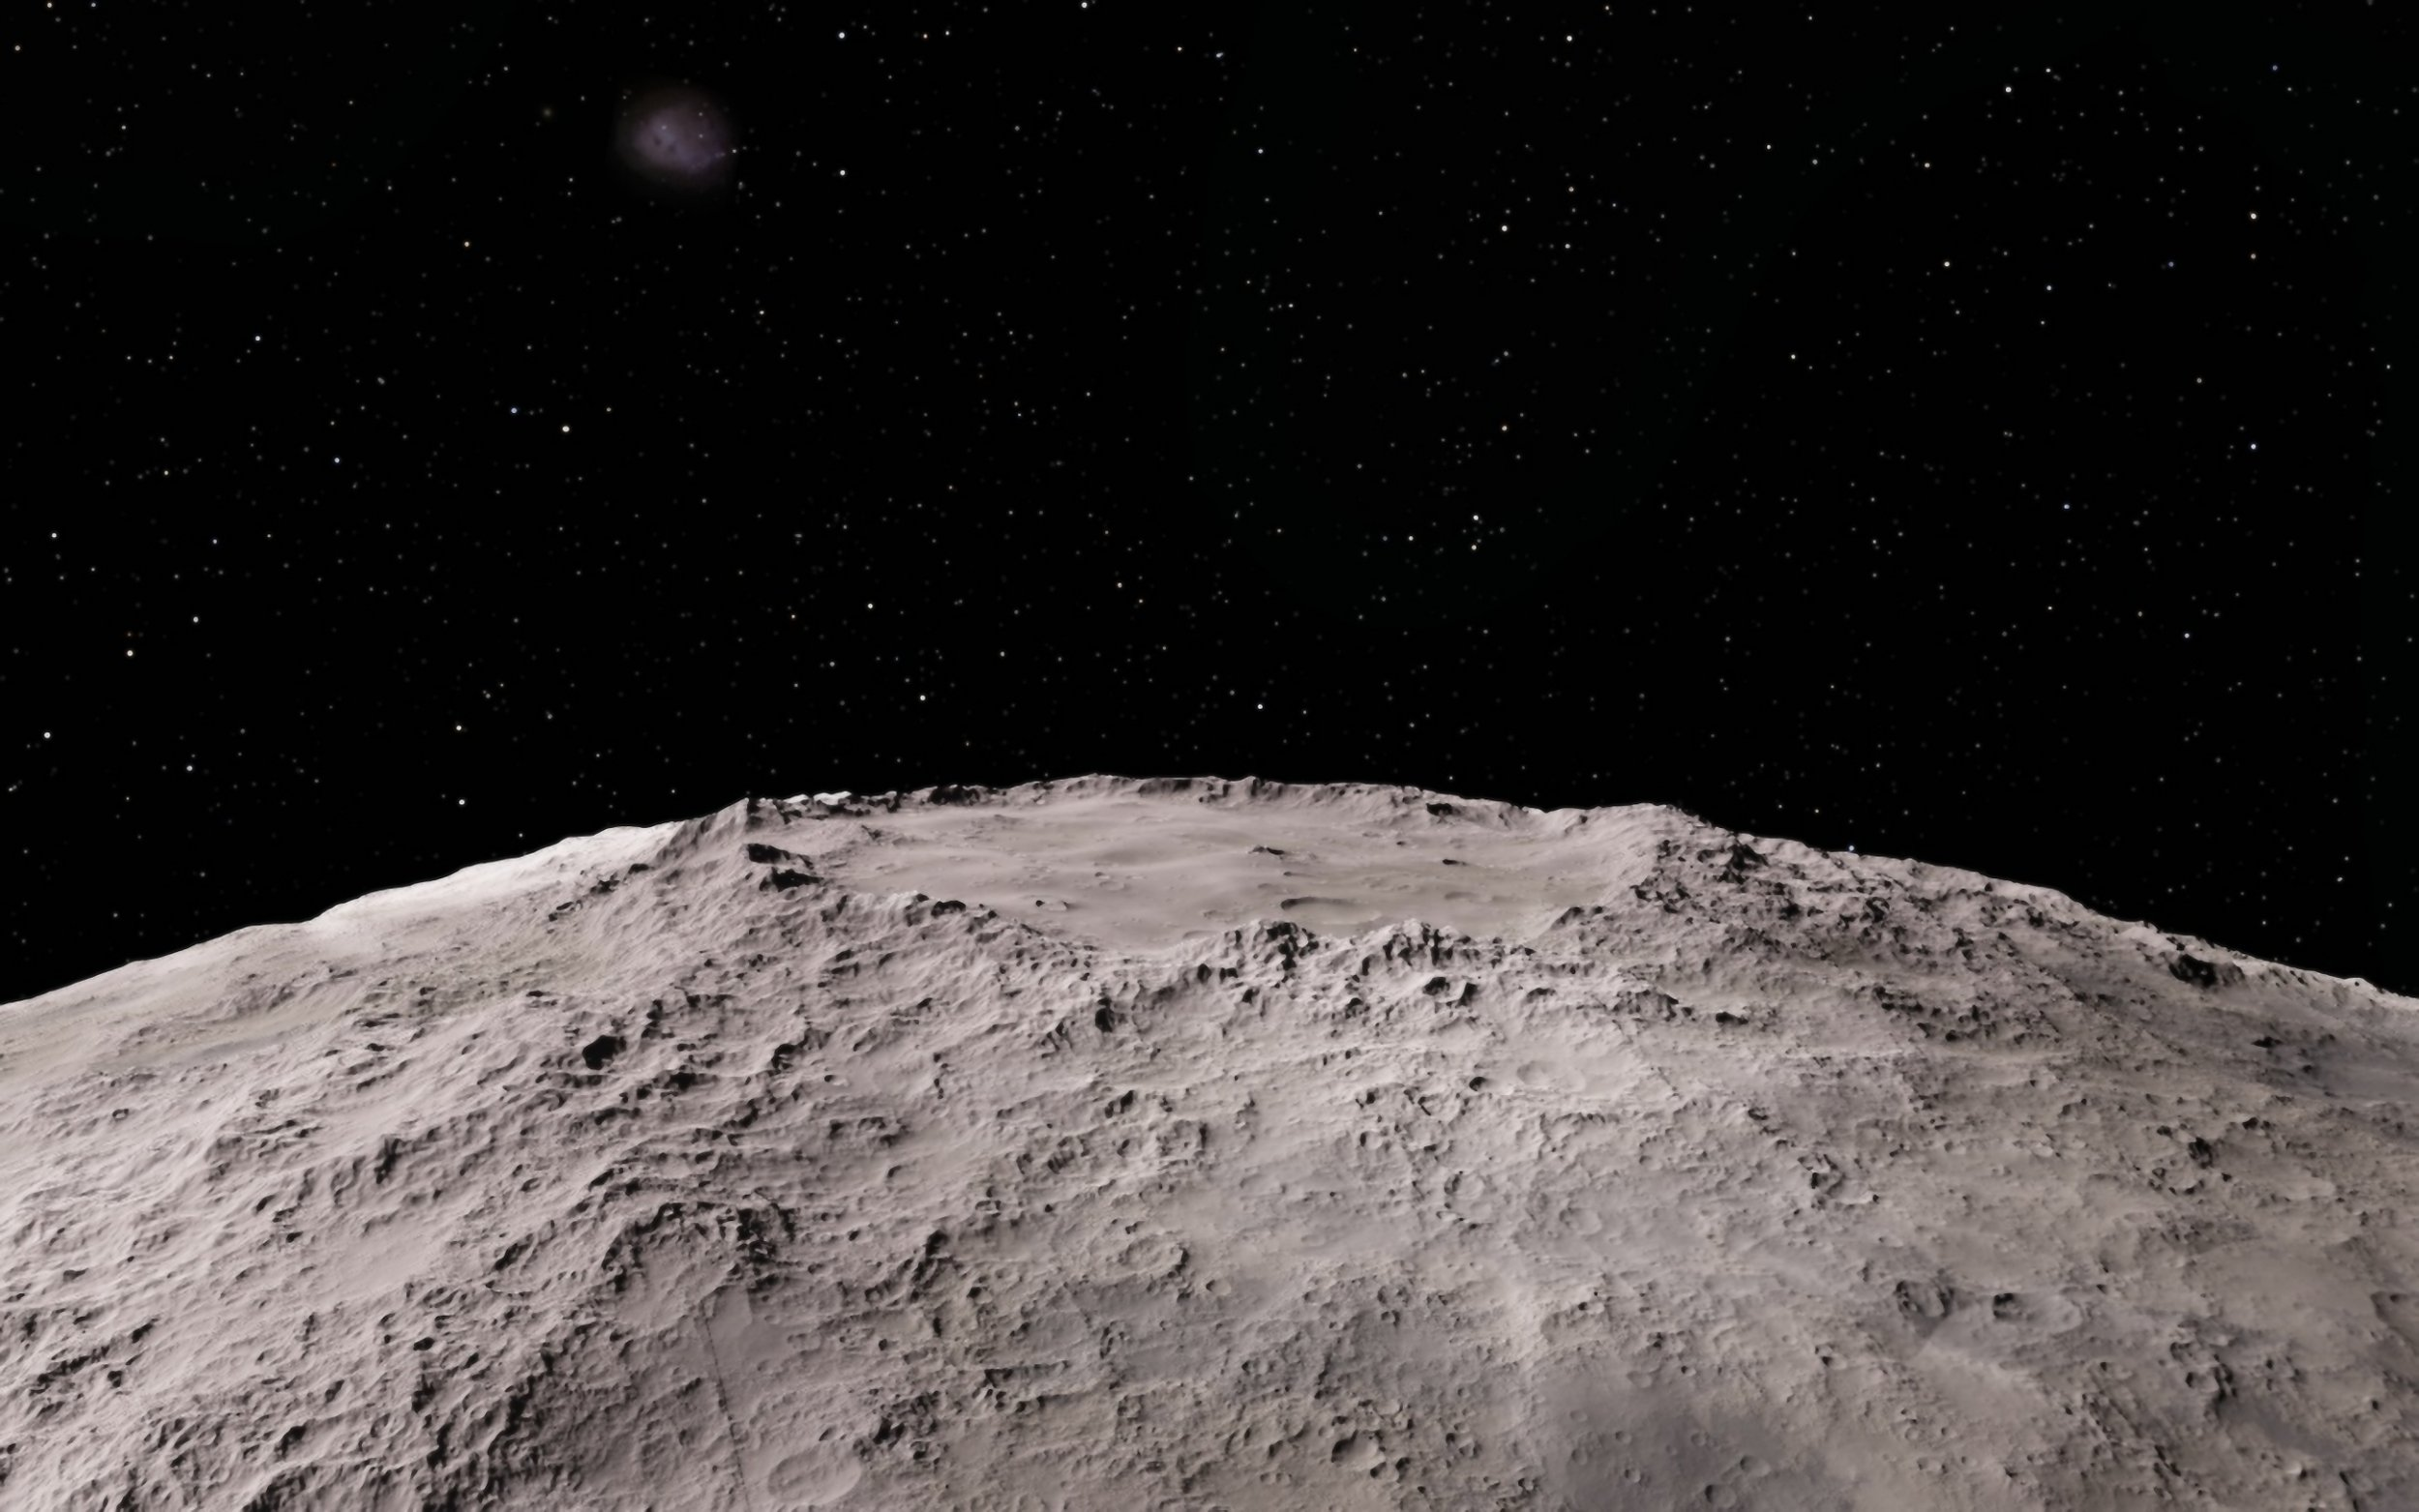 Moon, space exploration, private space travel, Israel, Beresheet